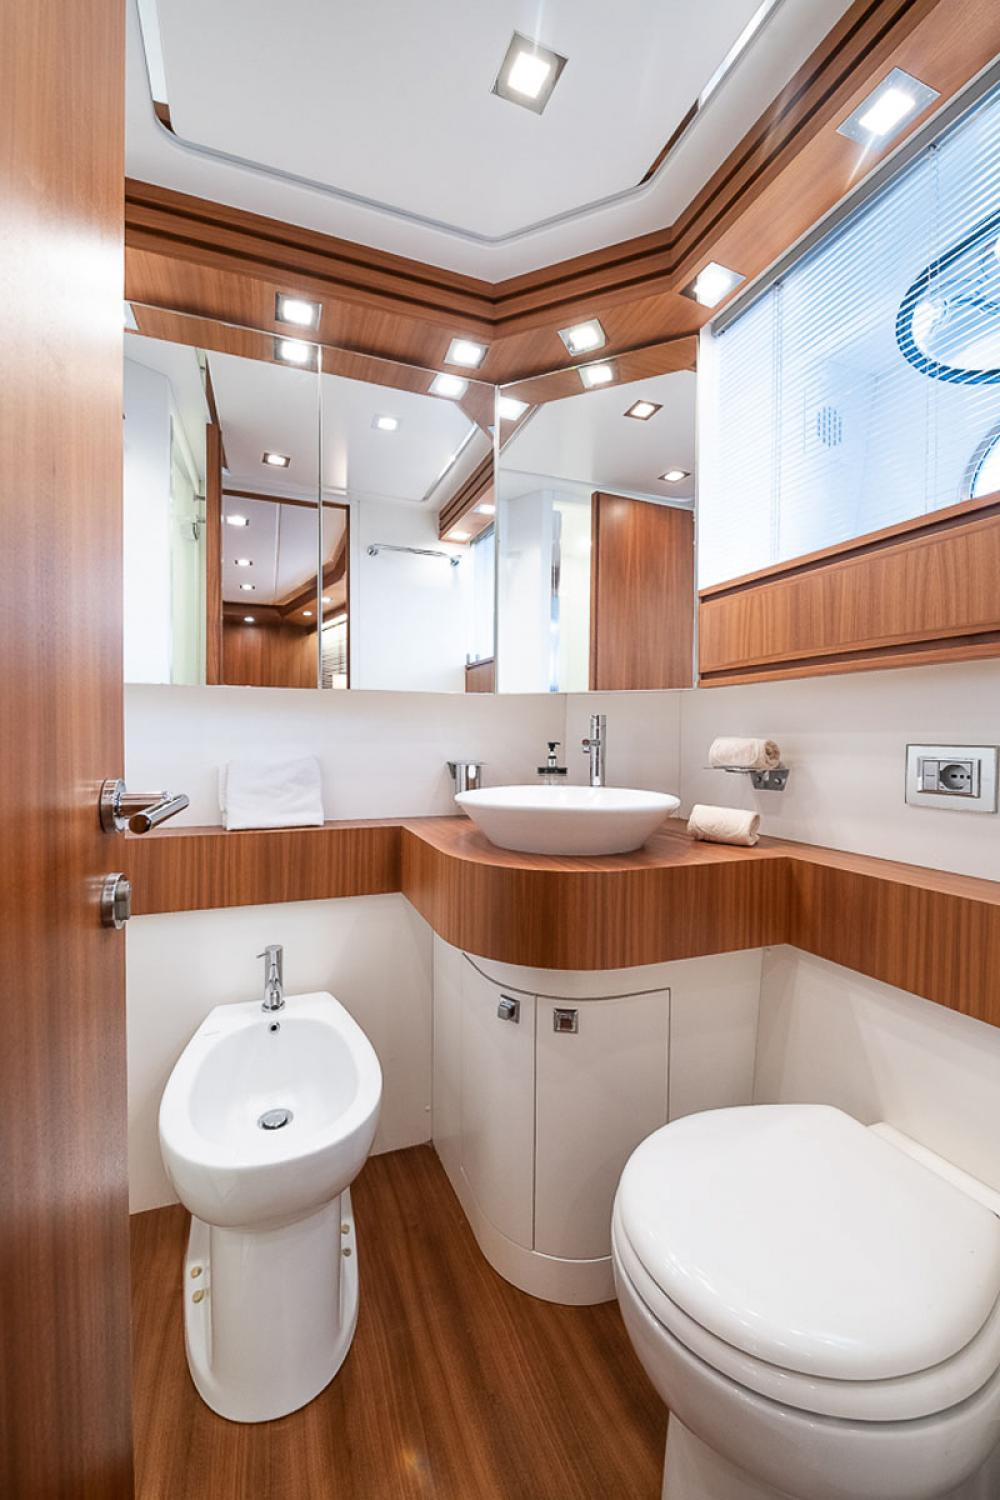 STRAVAGANZA - Luxury Motor Yacht For Sale - 1 DOUBLE CABIN - Img 4   C&N